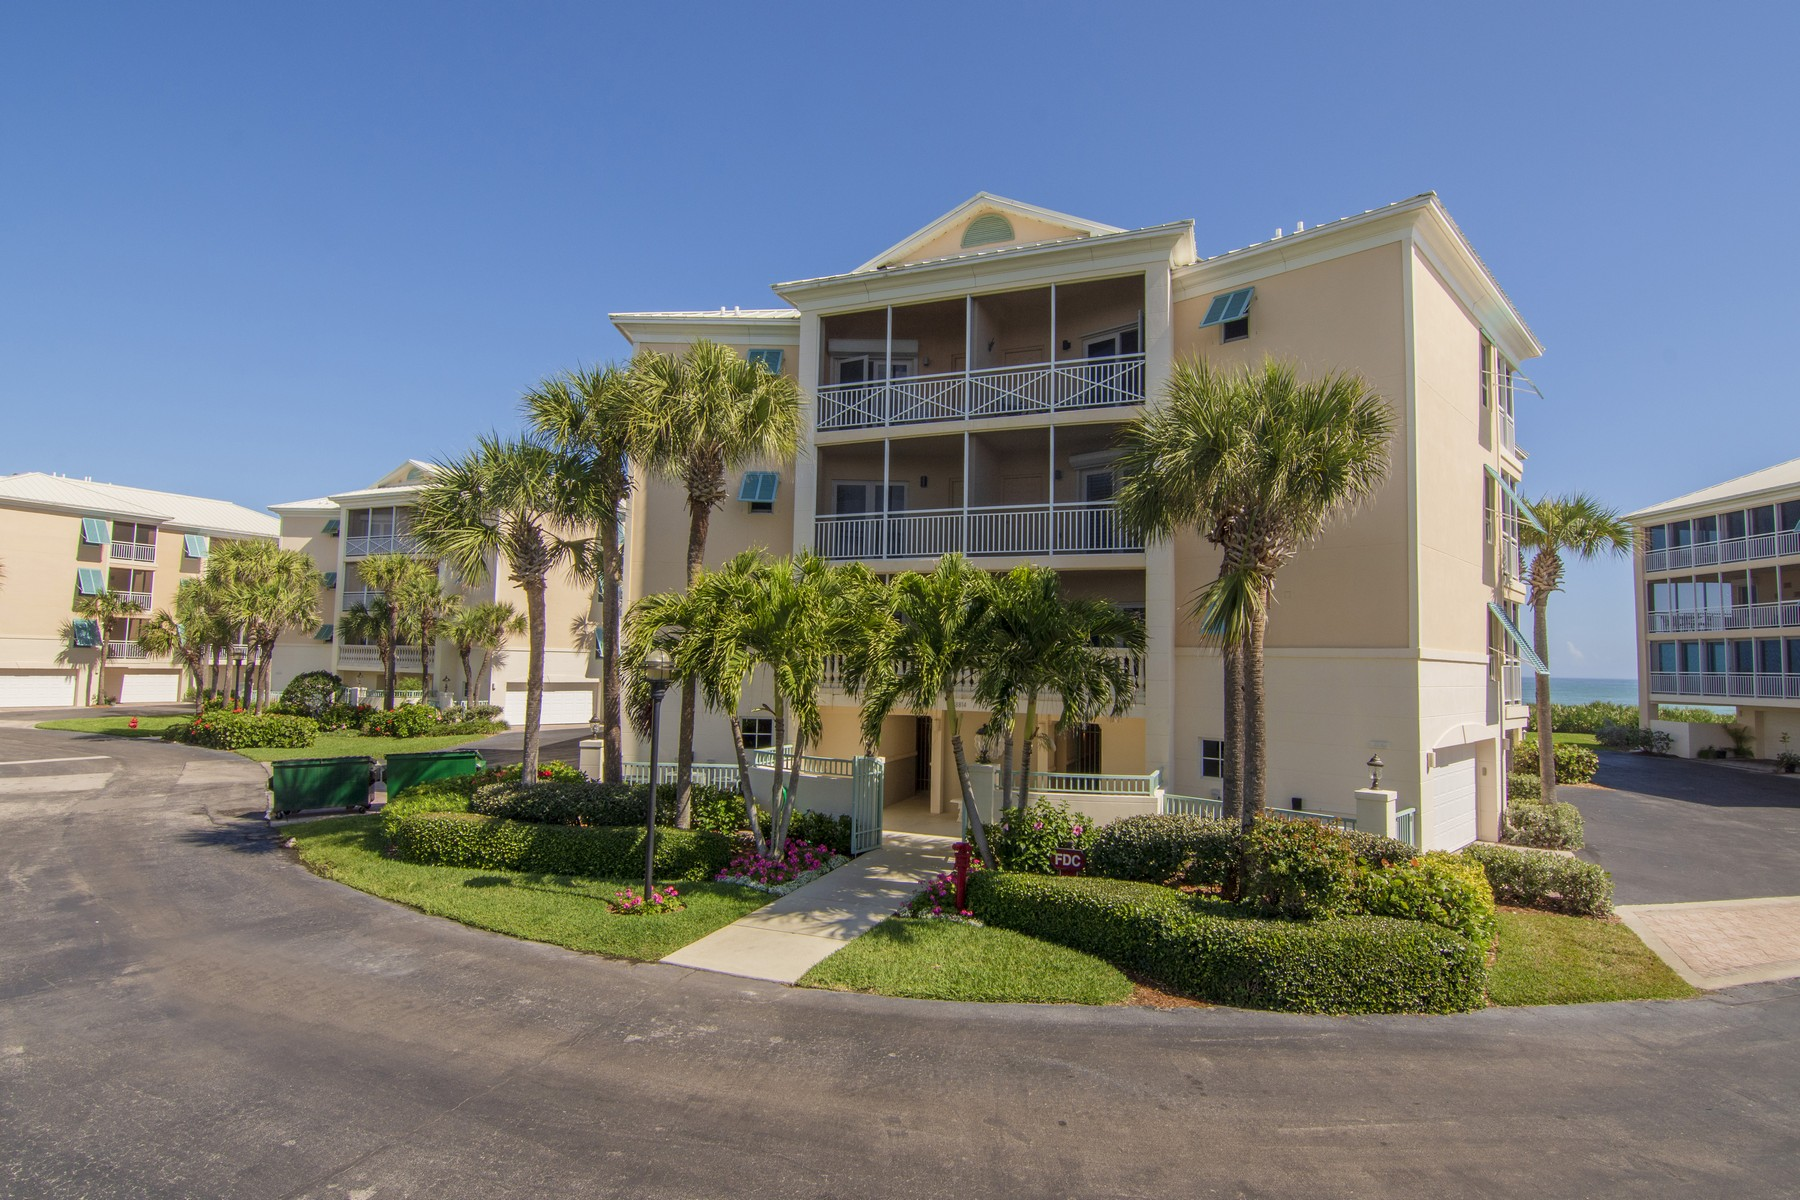 Condominiums for Sale at Sea Oaks Beach Villa 8814 S Sea Oaks Way Unit 304 Vero Beach, Florida 32963 United States